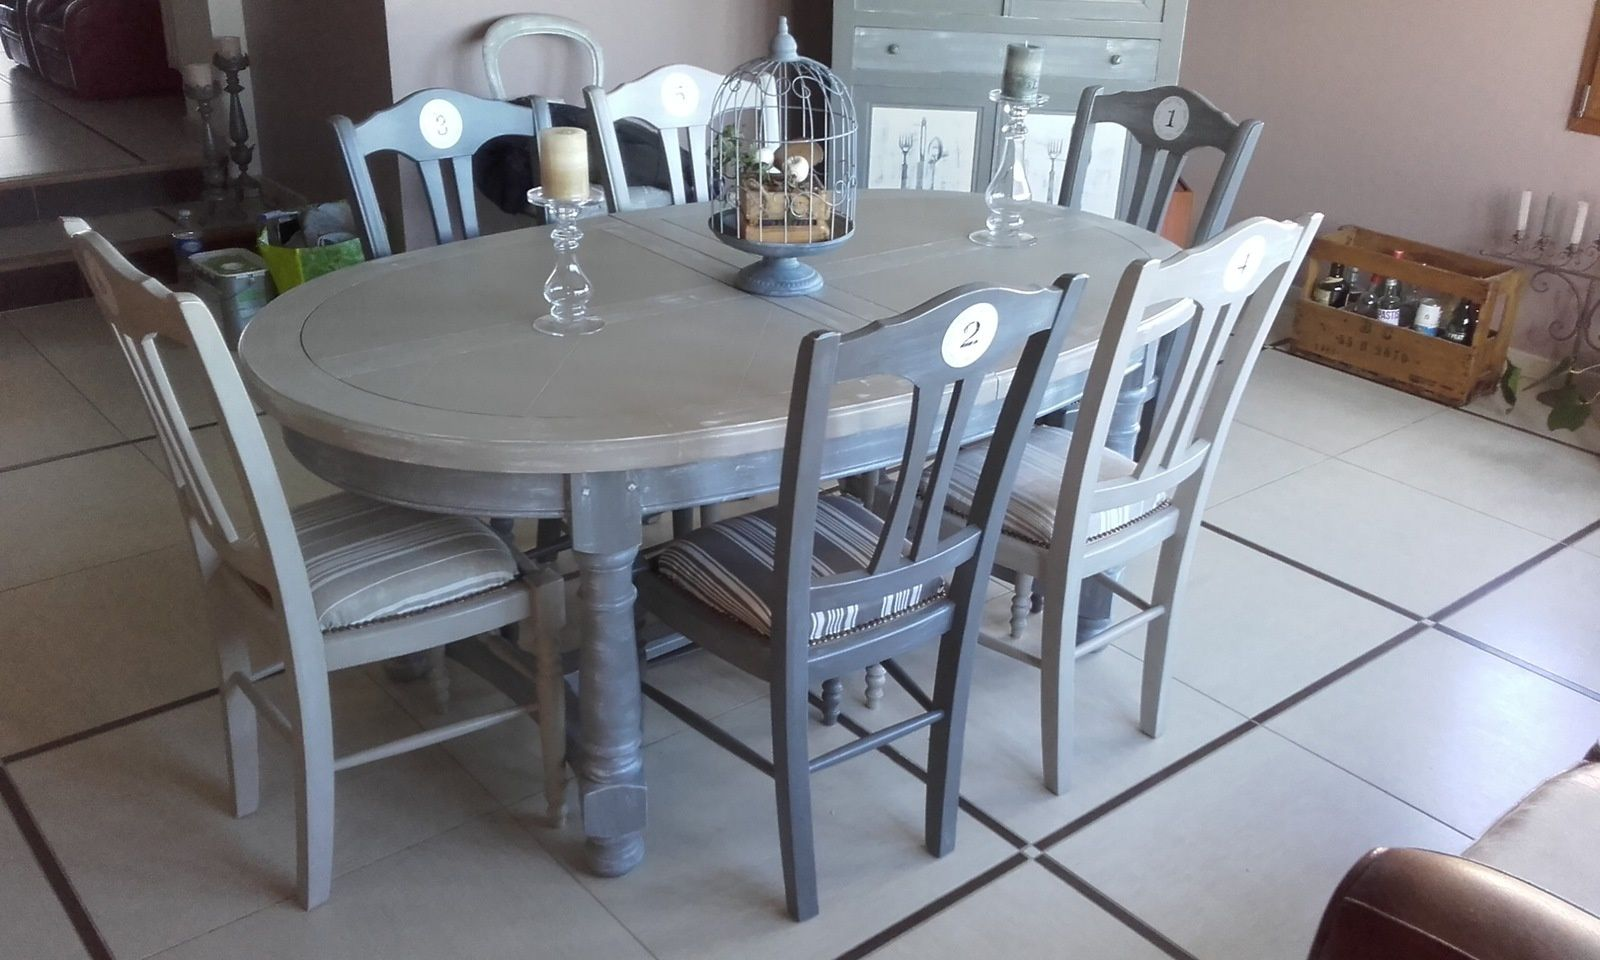 Salle a manger couleur taupe meilleures images d for Salle a manger taupe